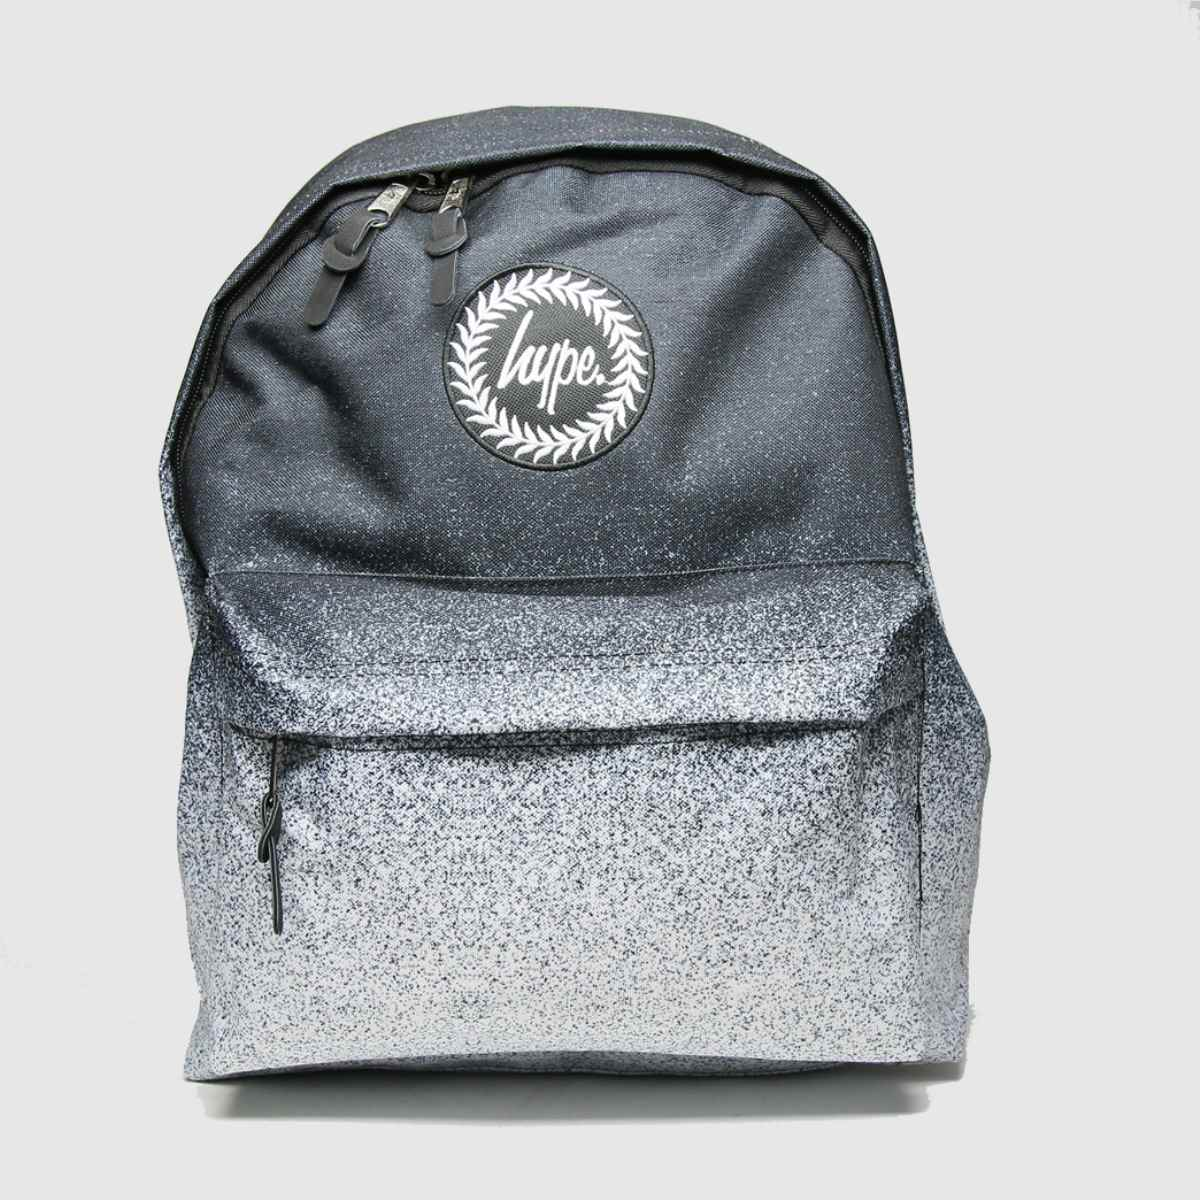 Accessories Hype Black & White Backpack